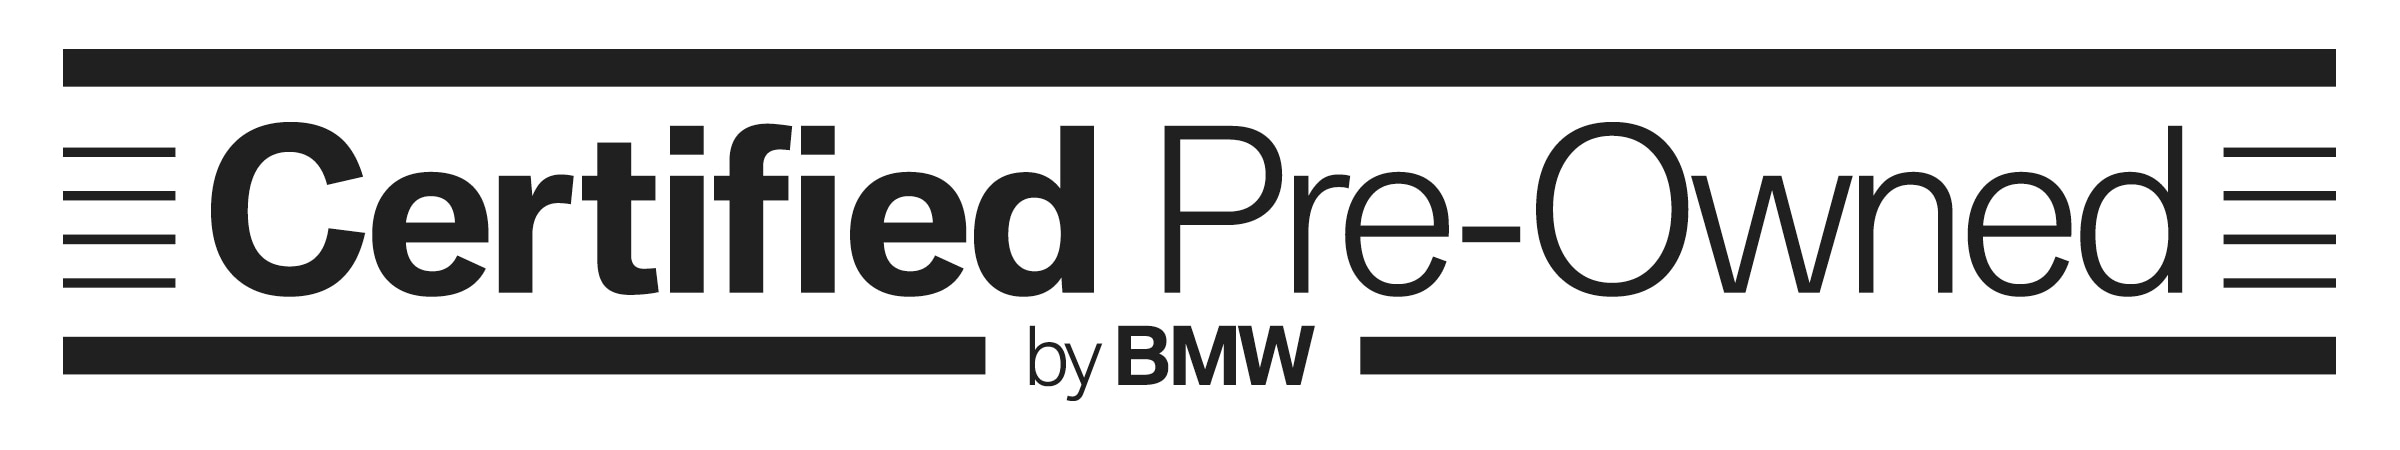 Bmw Pre Owned >> Certified Pre Owned Bmw Models In Honolulu Bmw Of Honolulu